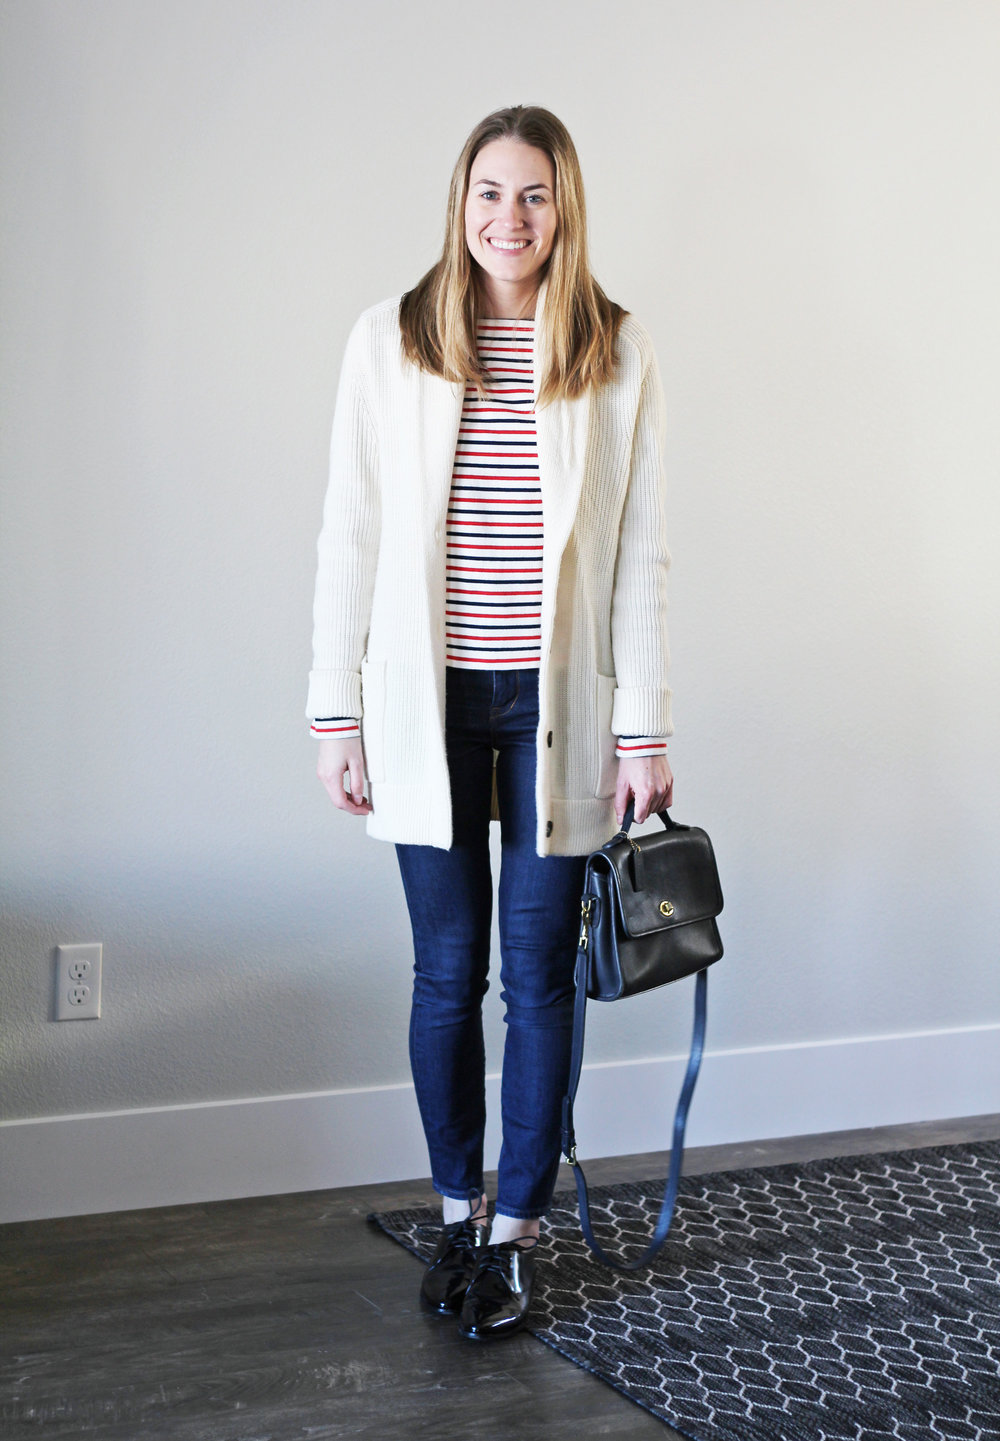 Winter 10x10: Ivory chunky knit cardigan, striped tee, skinny jeans, shiny black oxfords — Cotton Cashmere Cat Hair